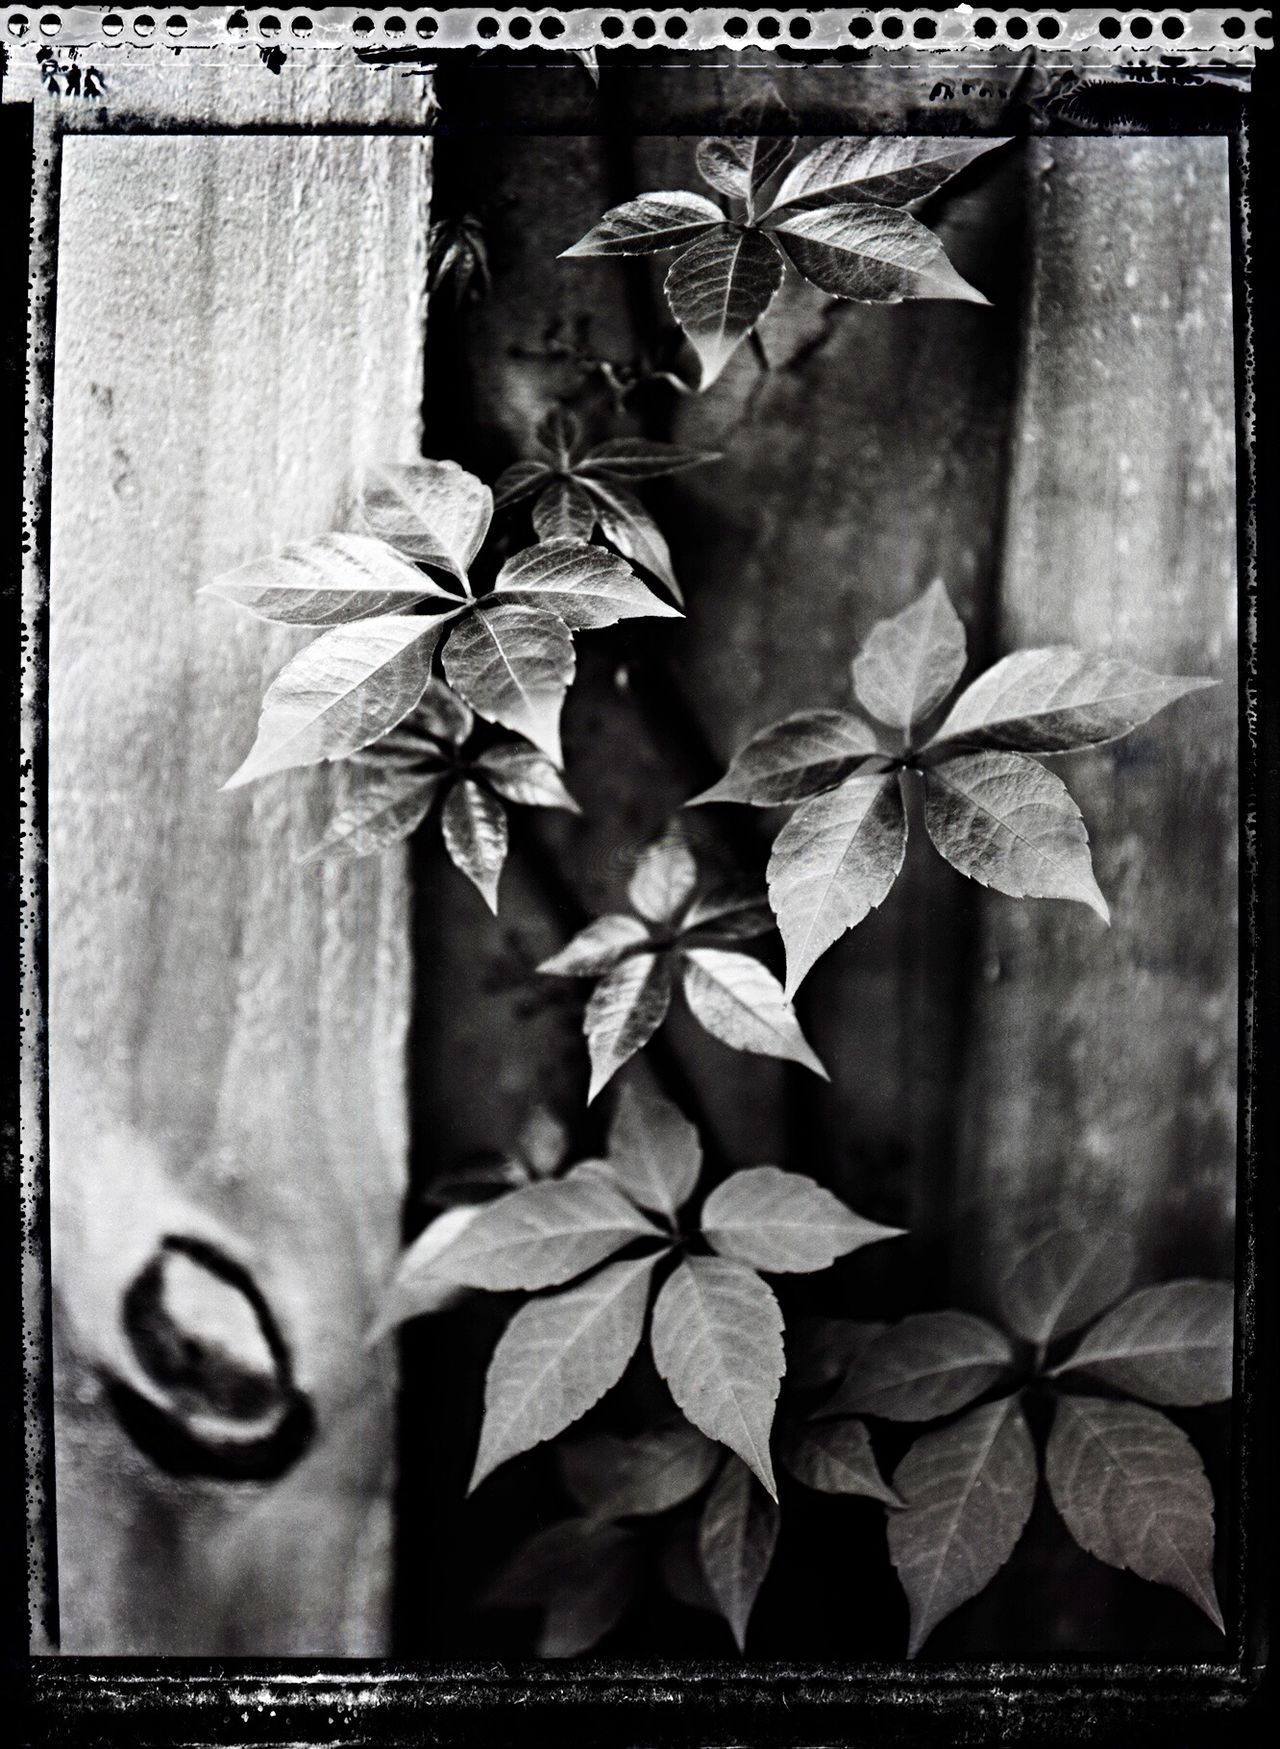 I Once knew a girl... ~ Polaroid Type 55 Polaroid Peel Apart Film Film Photography Large Format 4x5  Toyo Field Camera Nature's Diversities Nature Takes It Back Reclaimed By Nature Ivy Poetry In Pictures Kaleb M. Starr Monochrome Photography Maximum Closeness